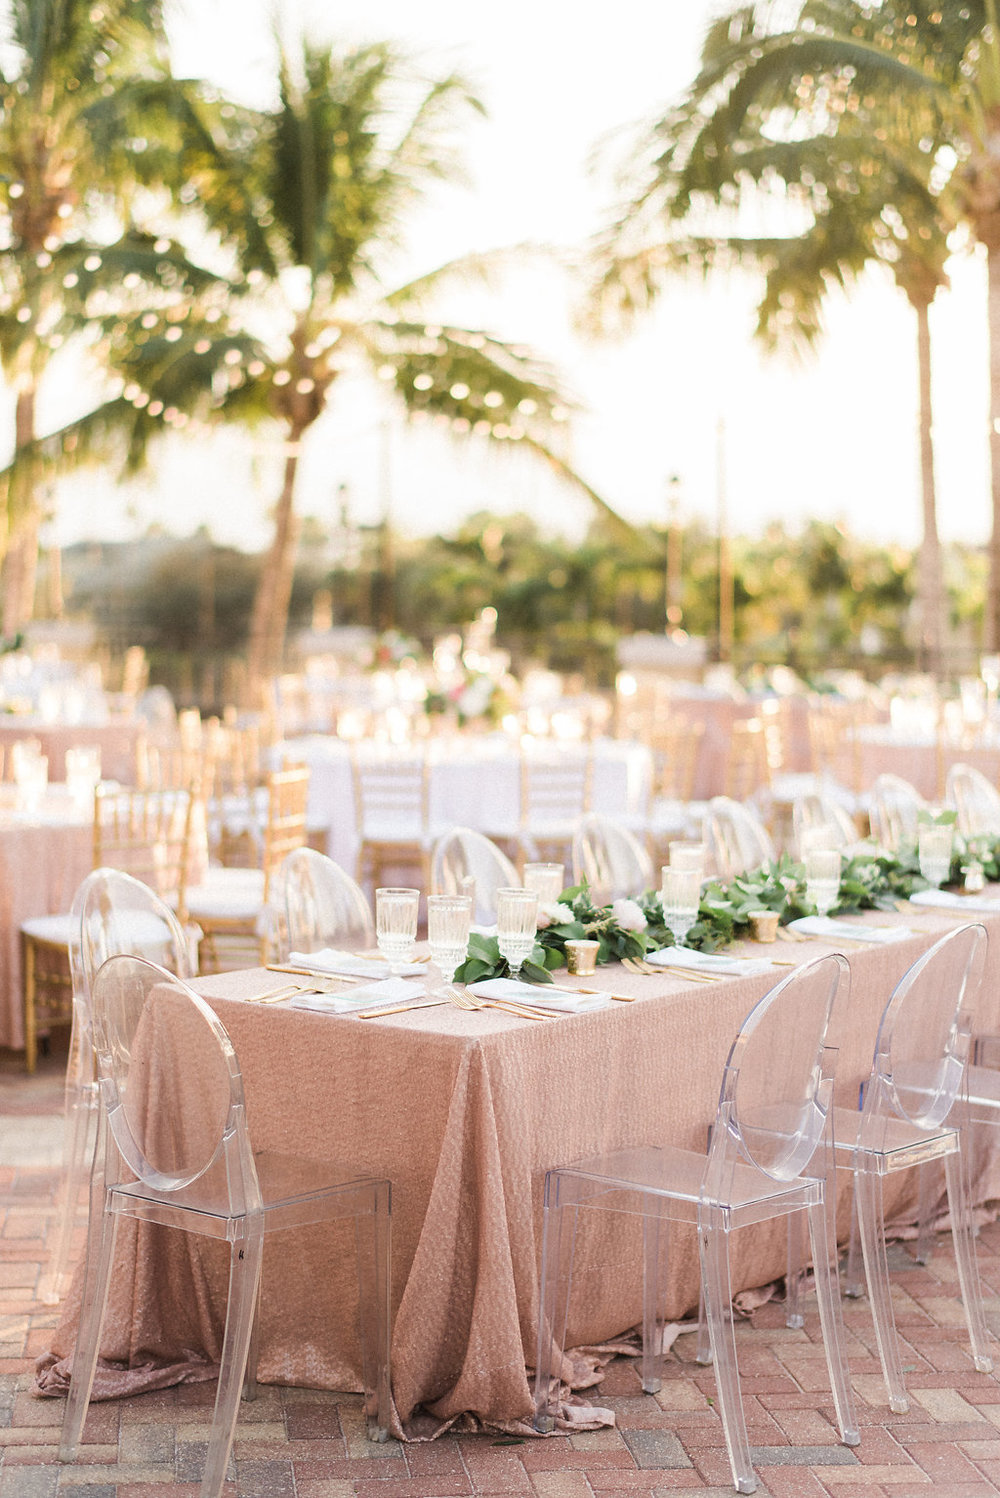 Blush and Gold wedding reception with garland centerpiece and ghost chairs